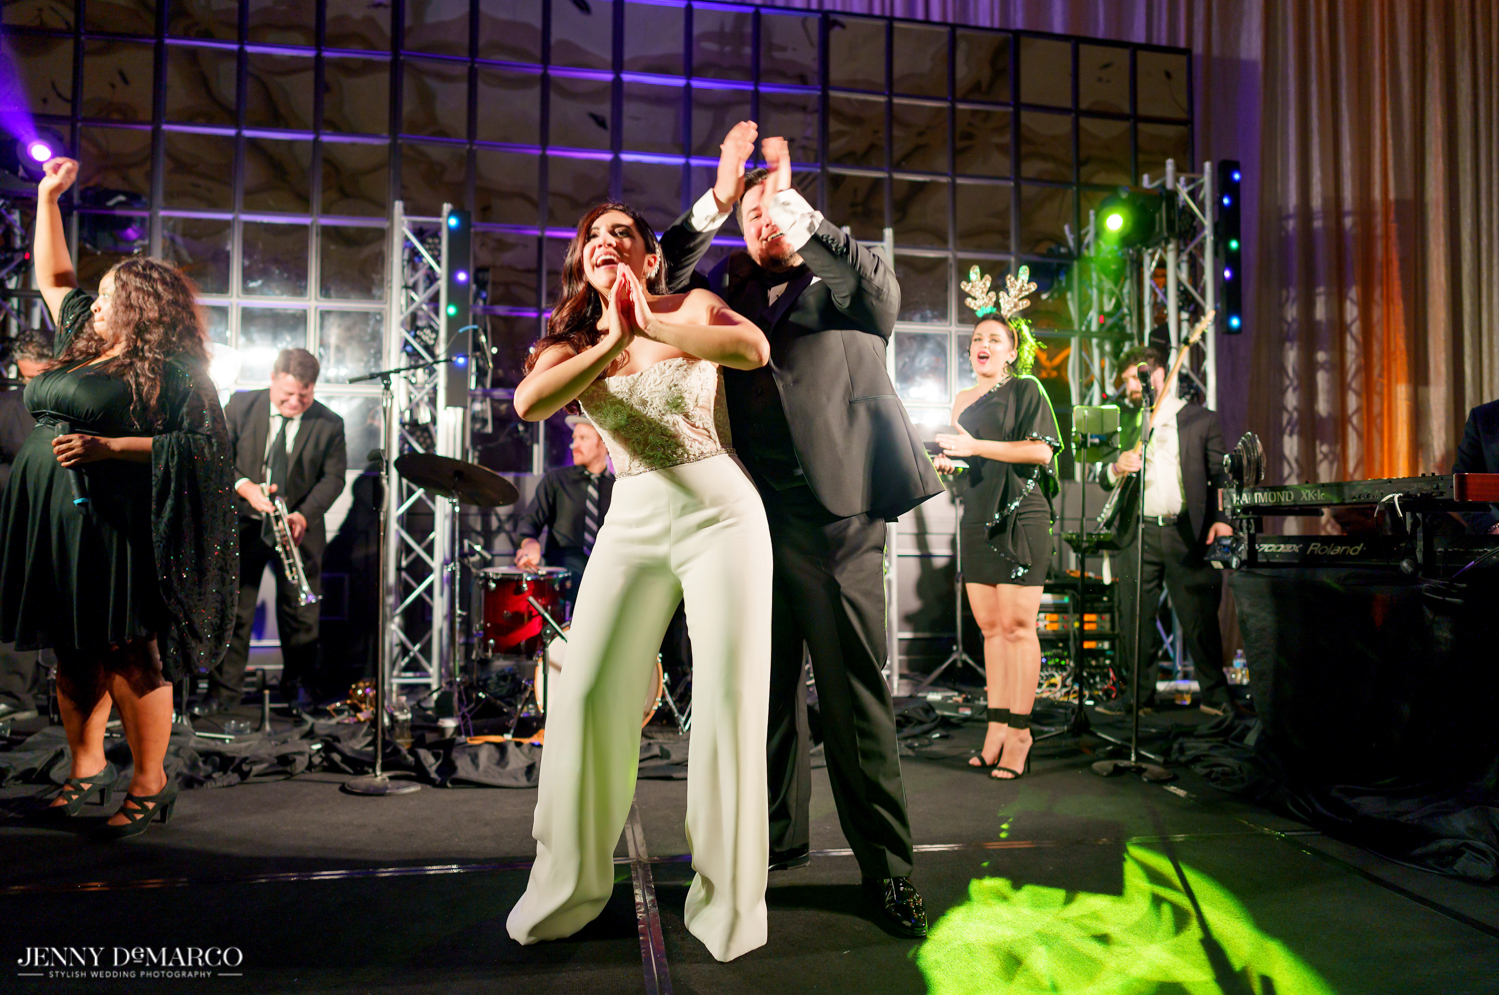 the bride and groom dancing on stage with the band